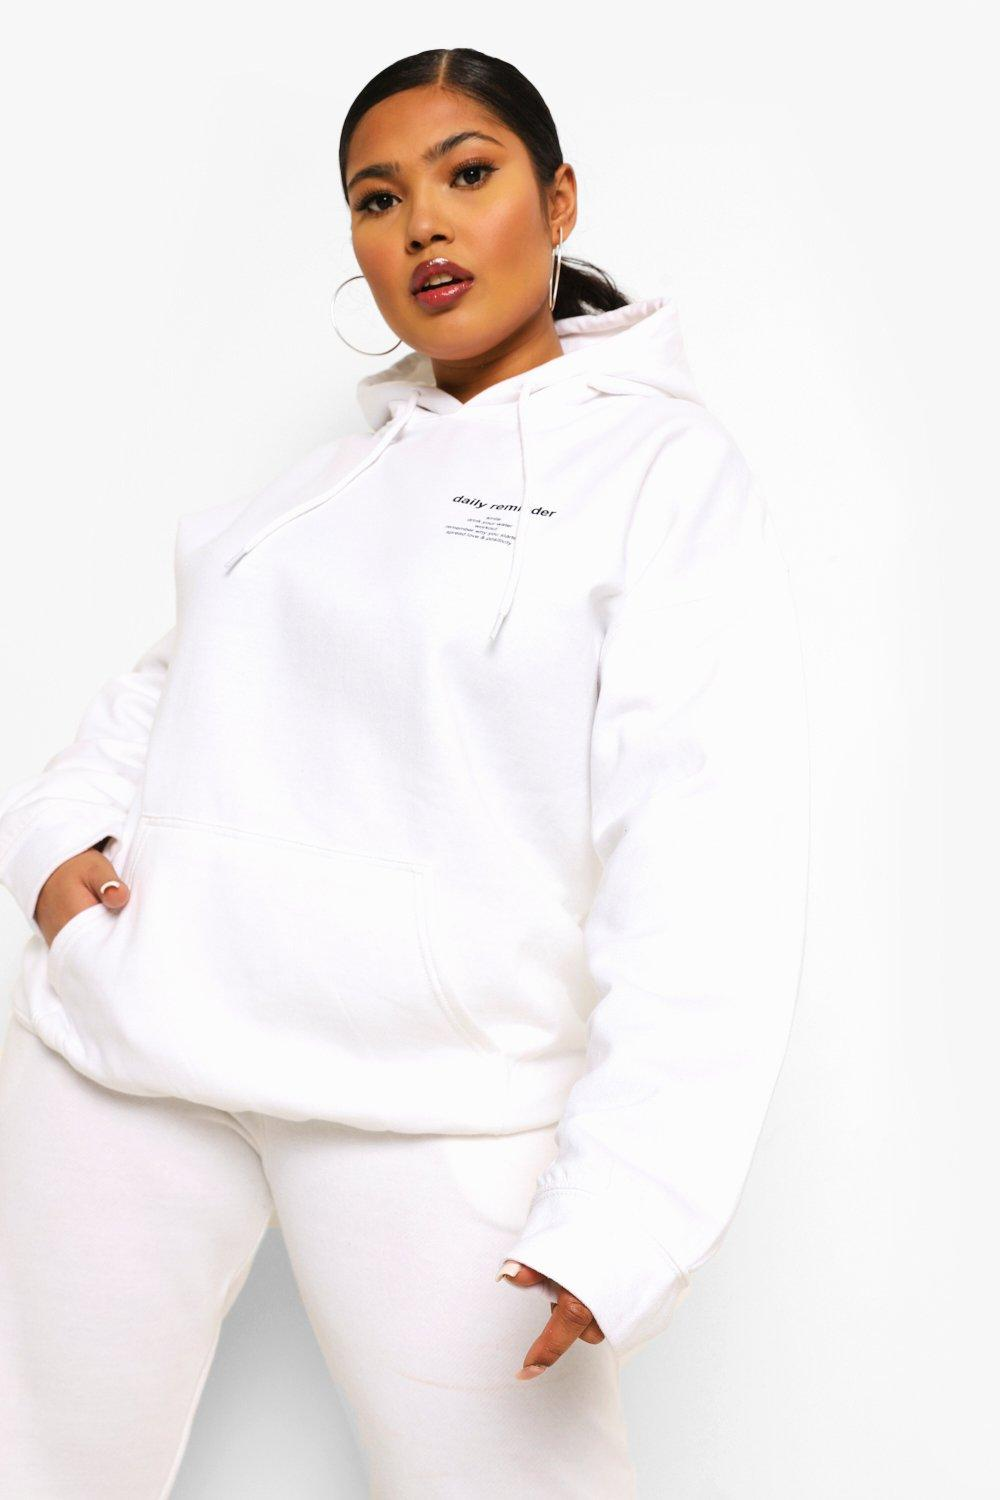 New Arrivals - Remind Me sweatshirt  Curvy